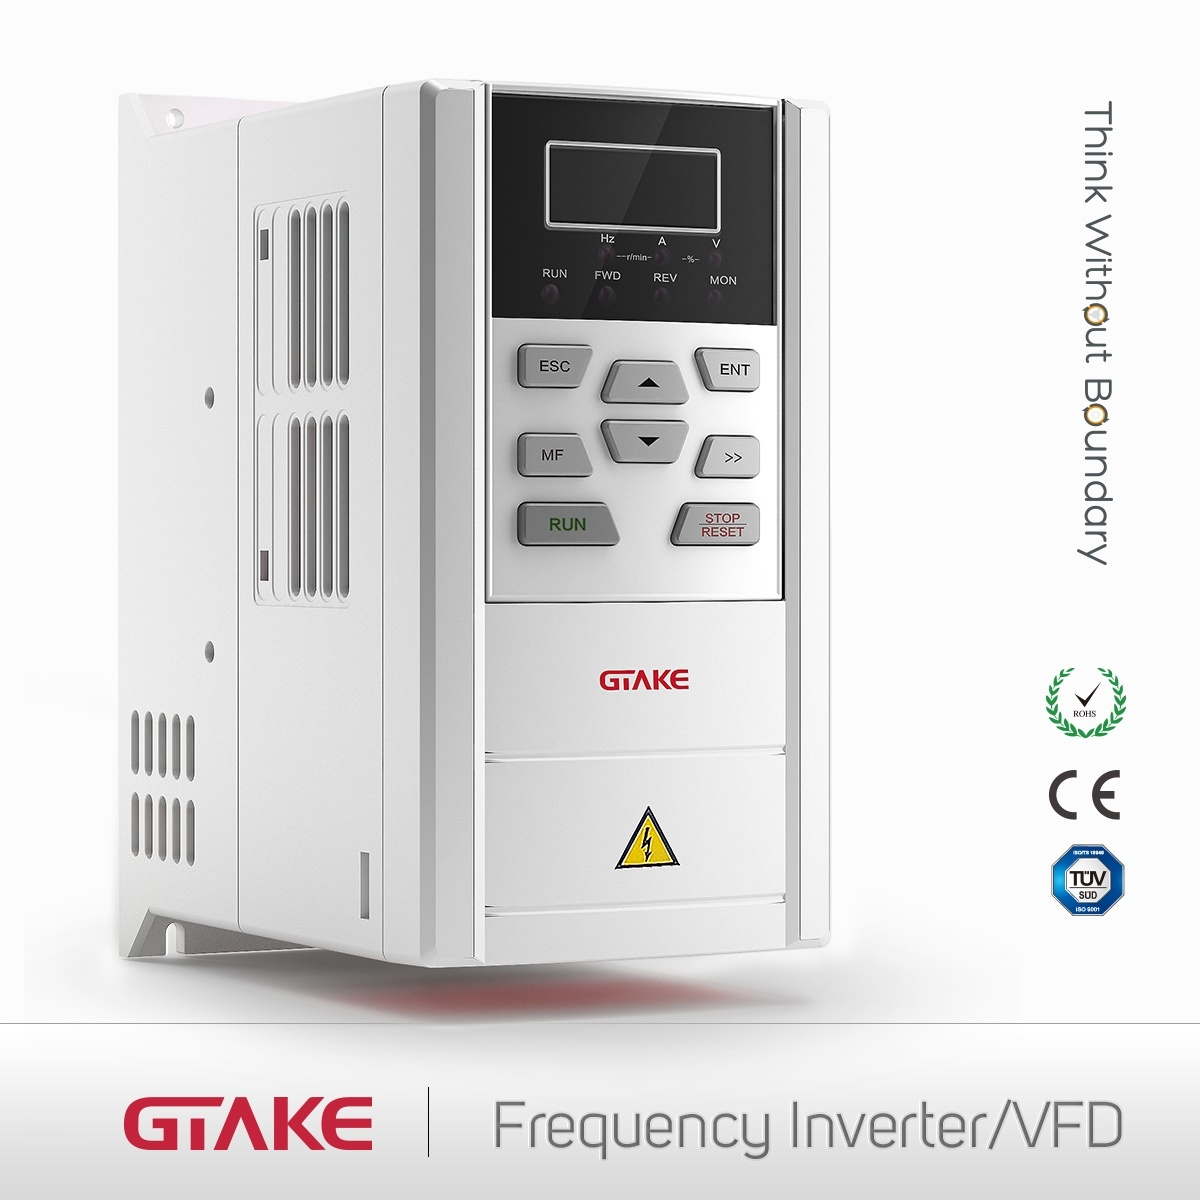 China Top Brand Frequency Inverter for General Purpose Applications